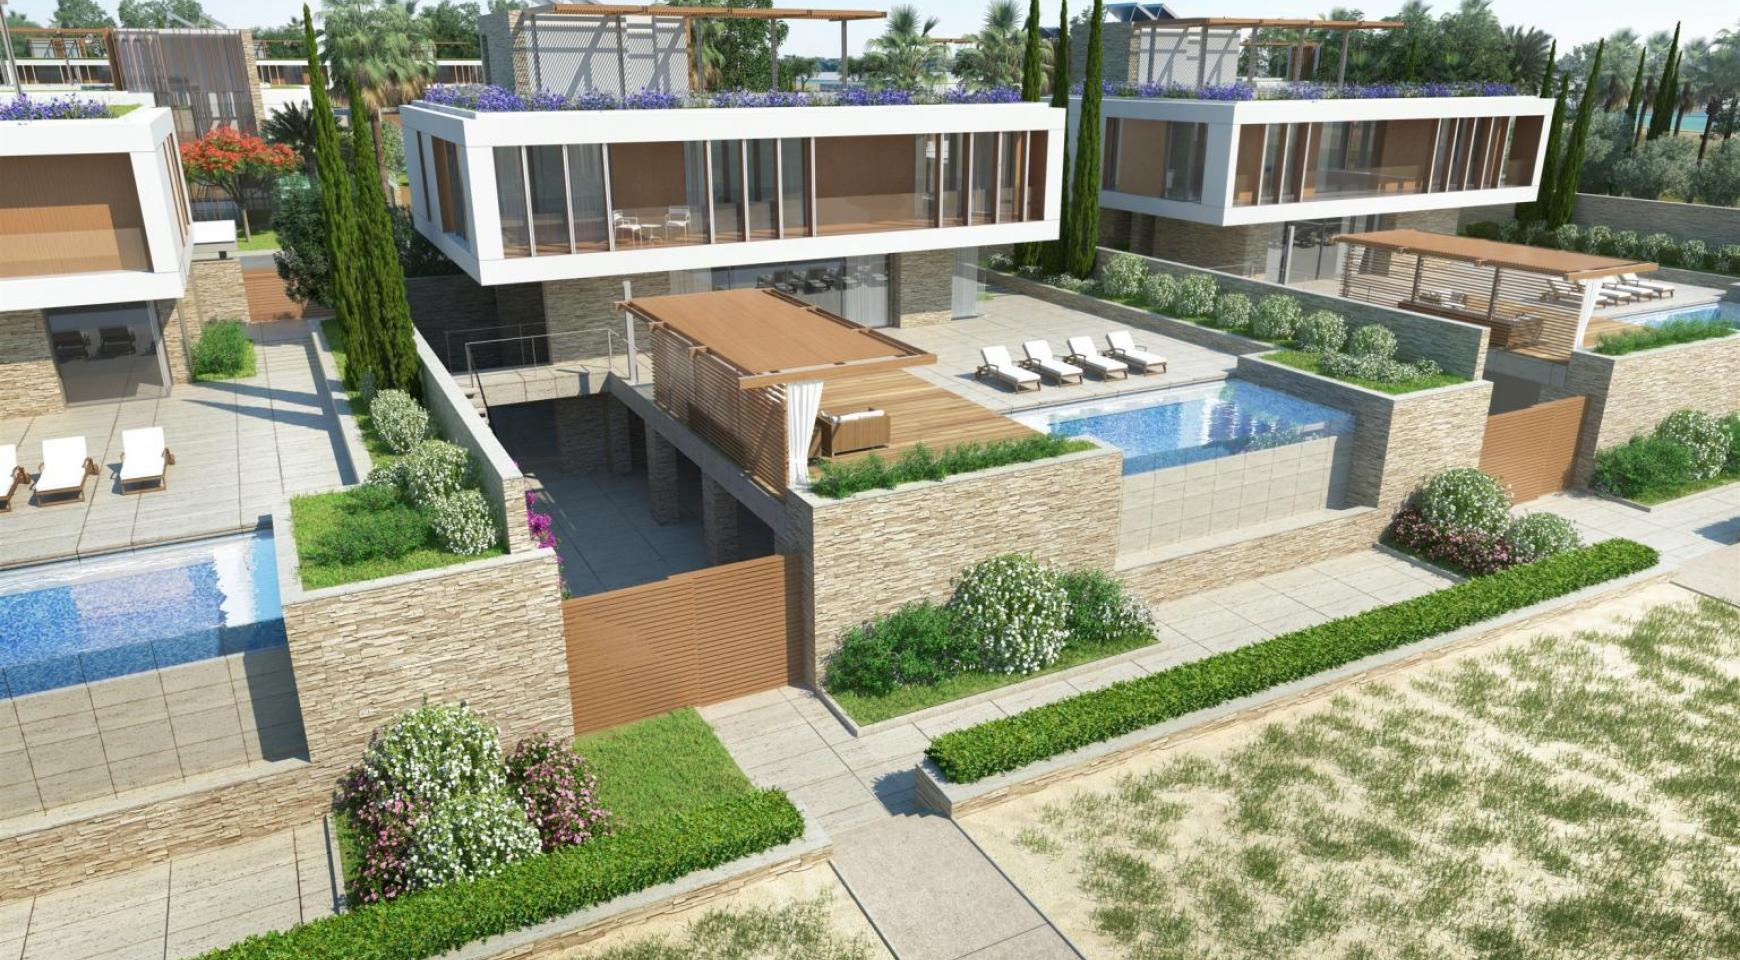 5 Bedroom Villa in an Exclusive Project by the Sea - 5